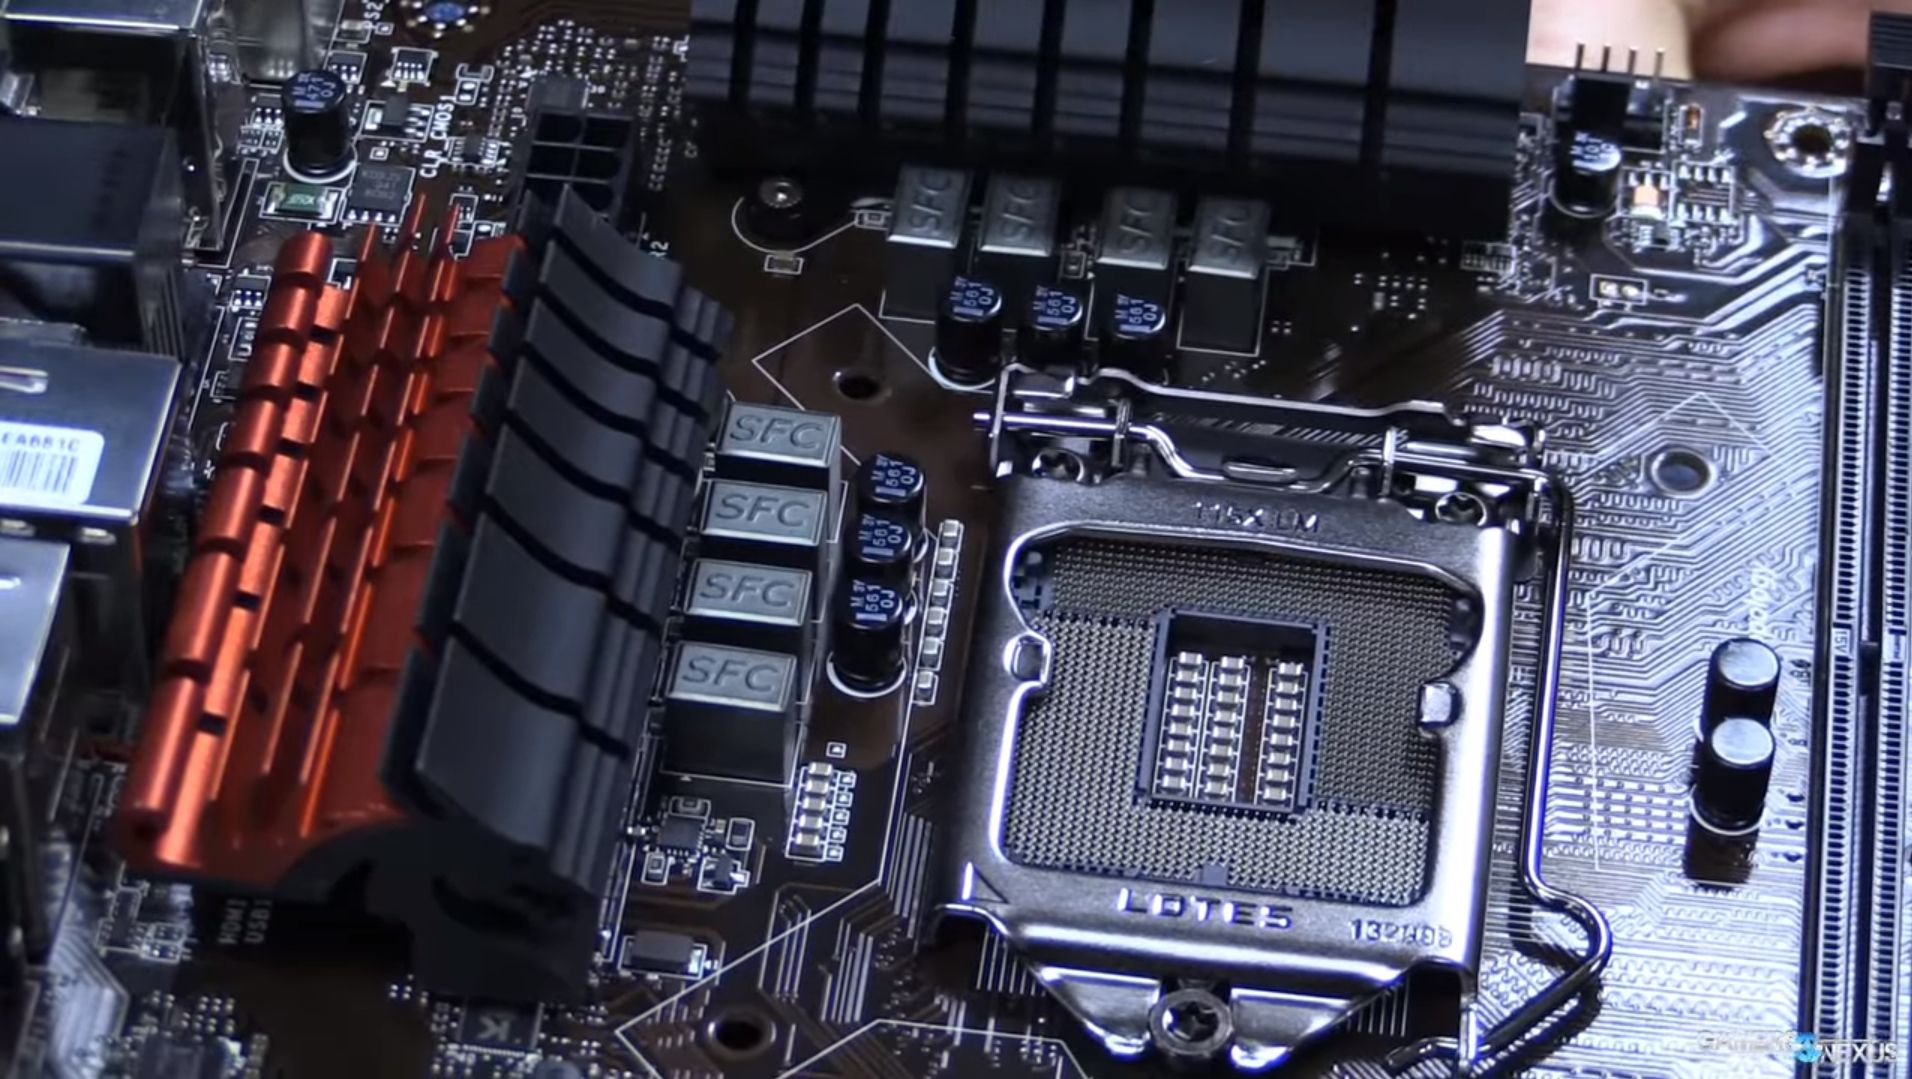 a closeup look at VRM of mobo